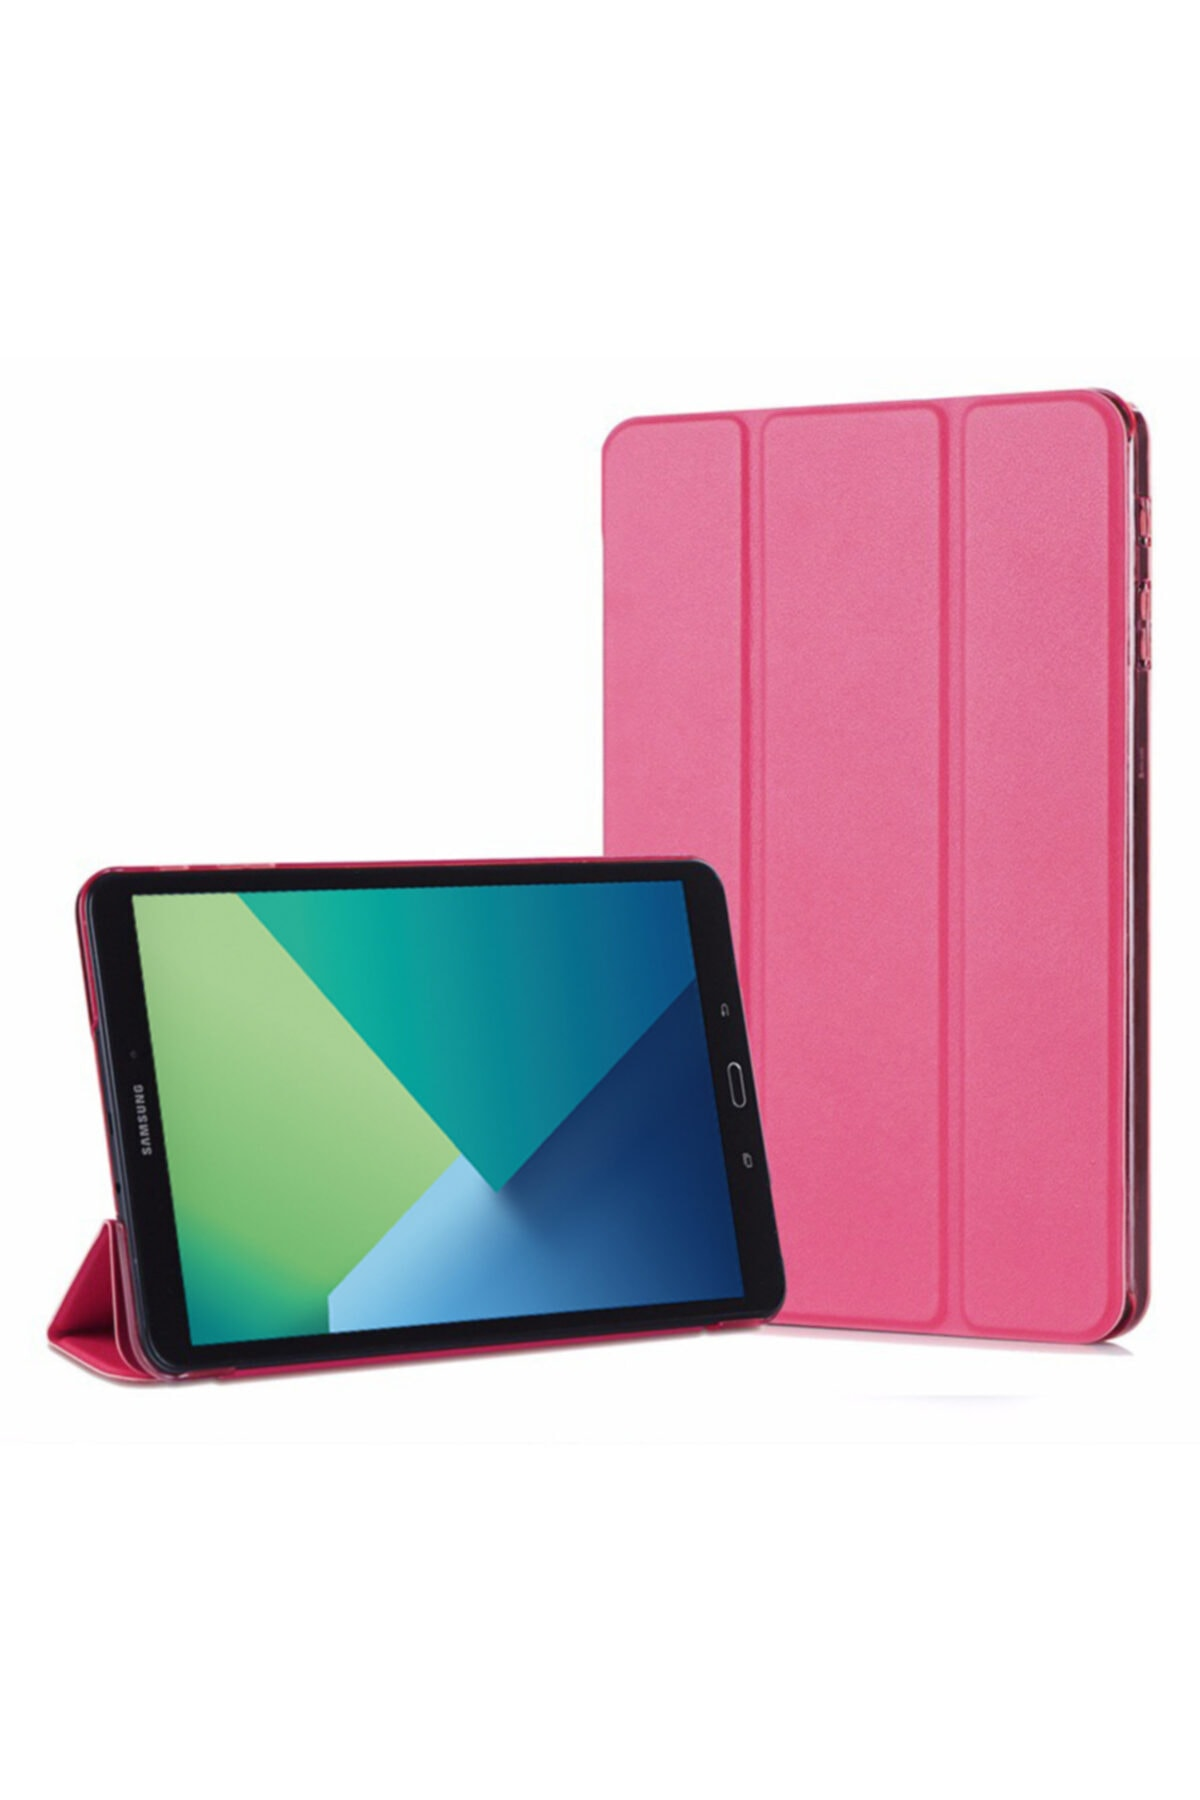 Microsonic Galaxy Tab A 10.1'' P580 Smart Case Ve Arka Kılıf, Microsonic Pembe 1